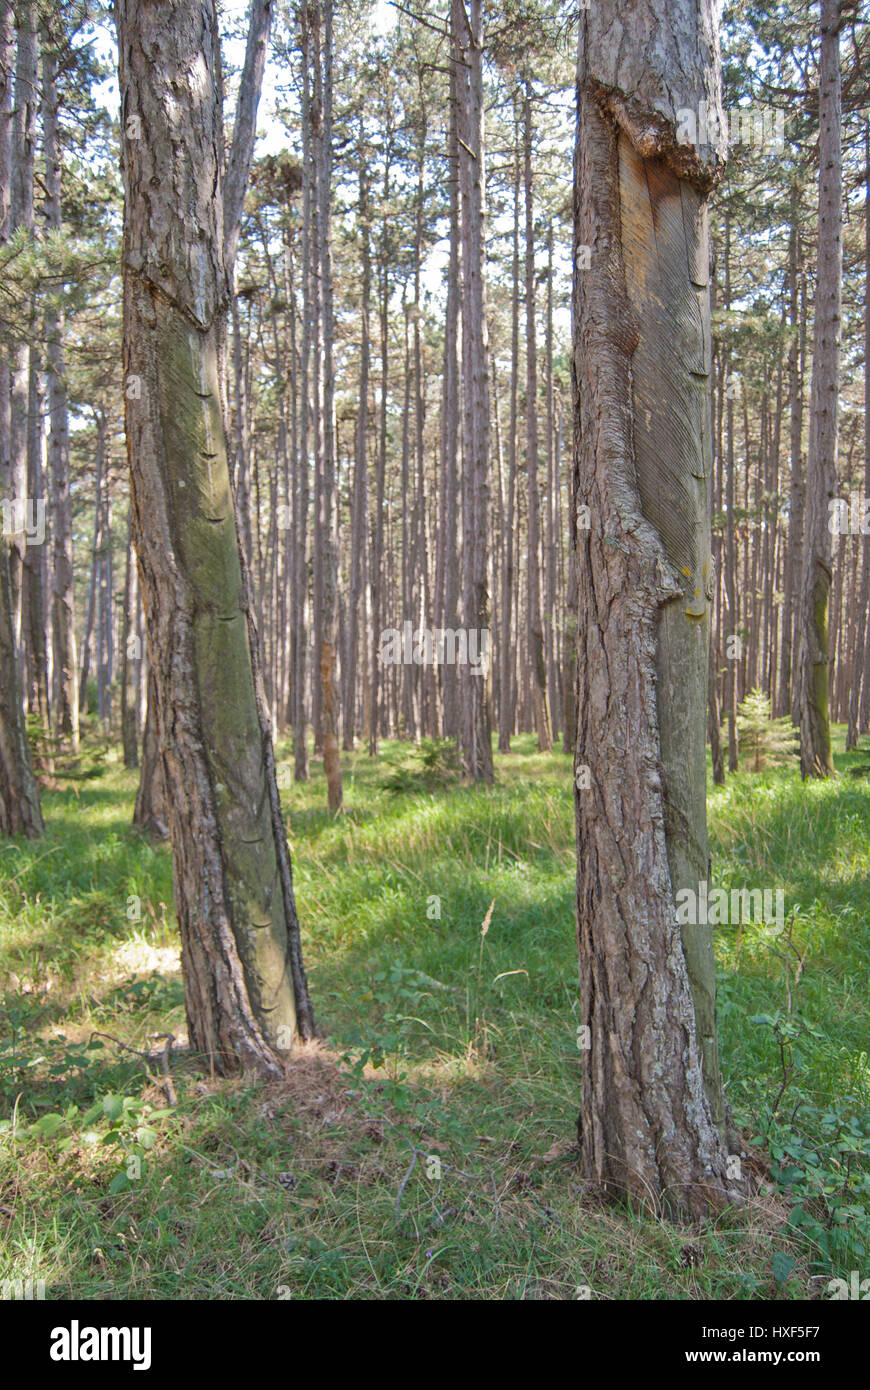 Austrian pine (Pinus nigra) forest with remnants of resin extraction (tapping). Resin chemicals are widely used - Stock Image